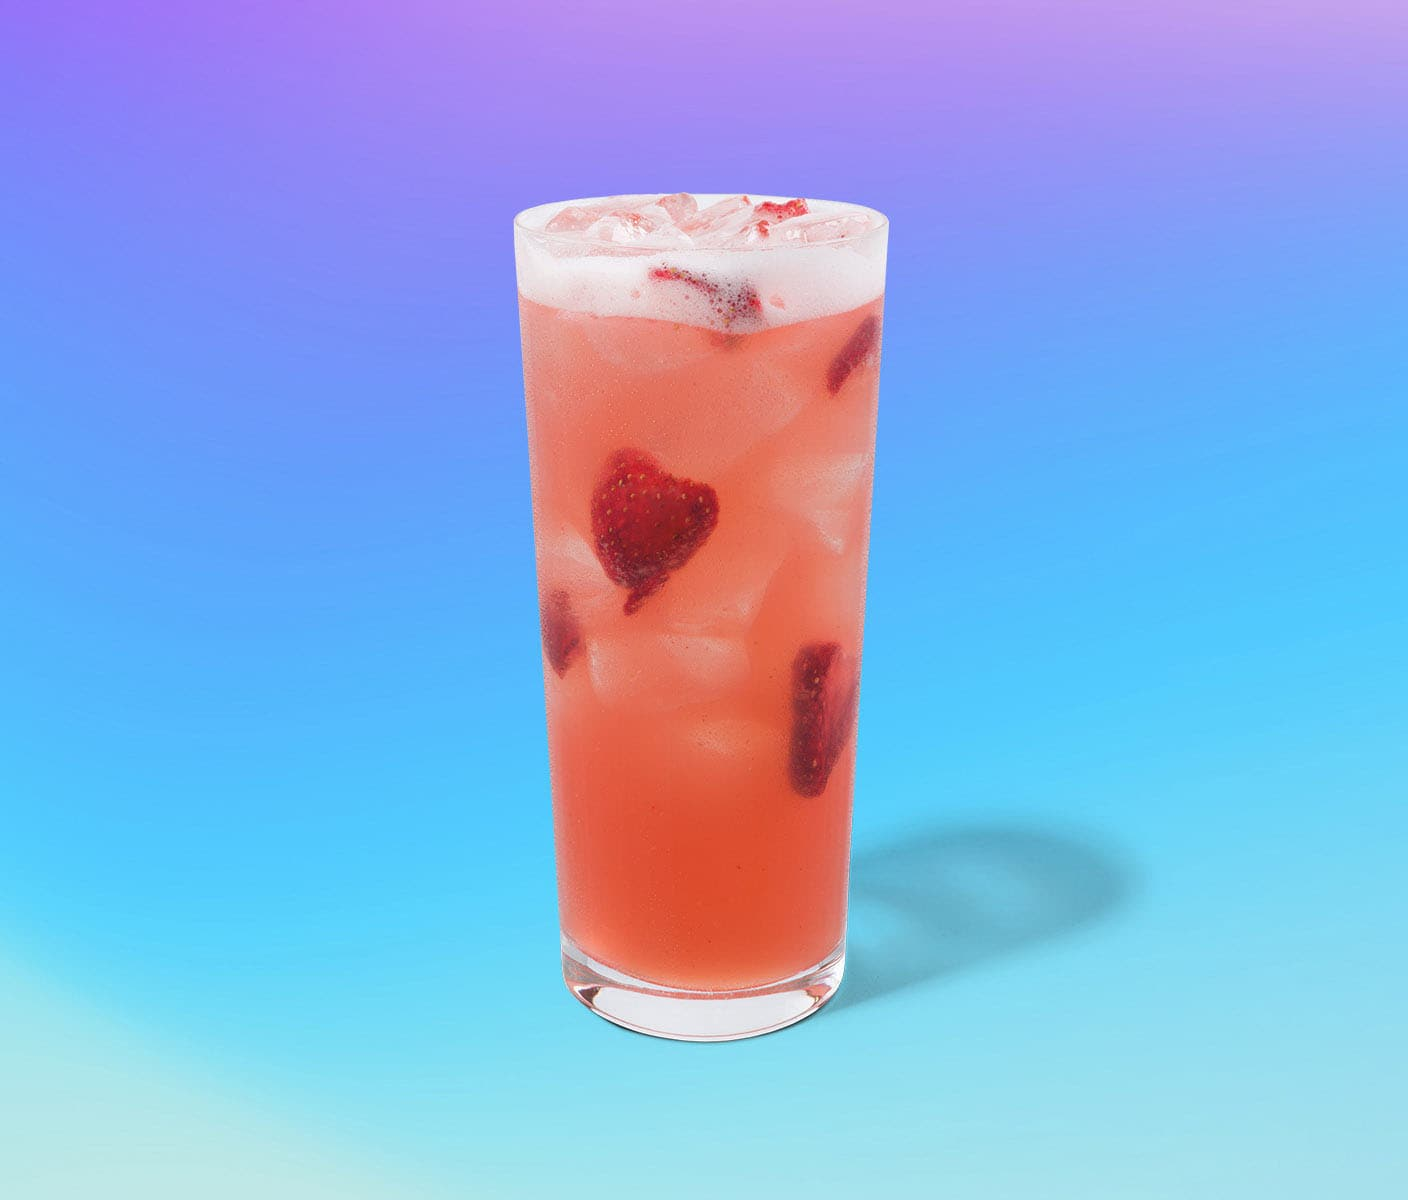 Iced drink in tall glass with strawberry inclusions